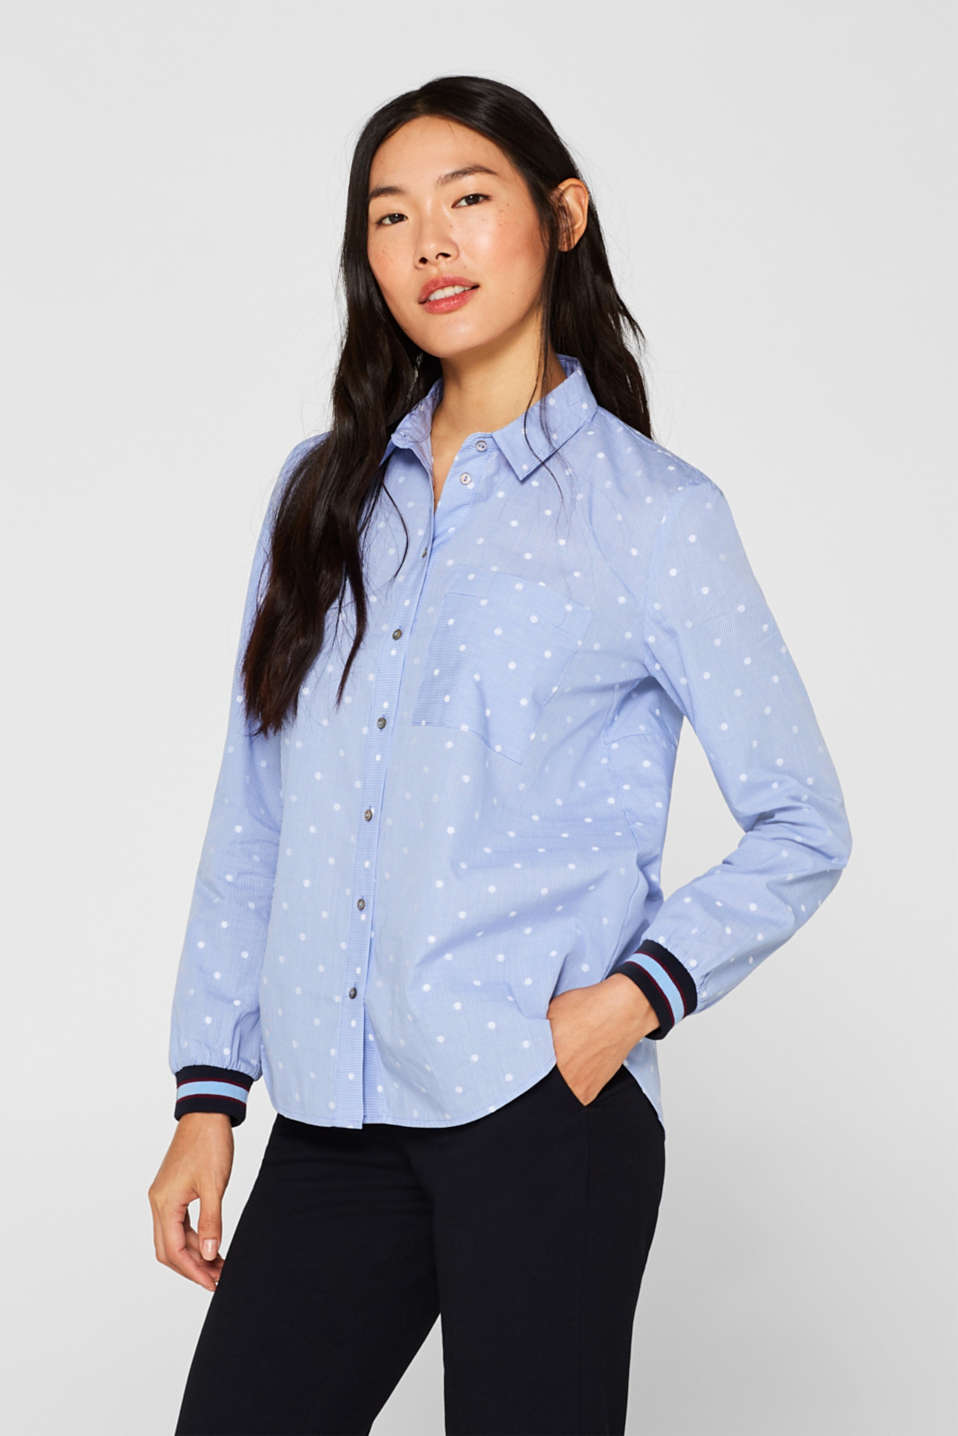 Esprit - Shirt blouse with rib knit cuffs, 100% cotton